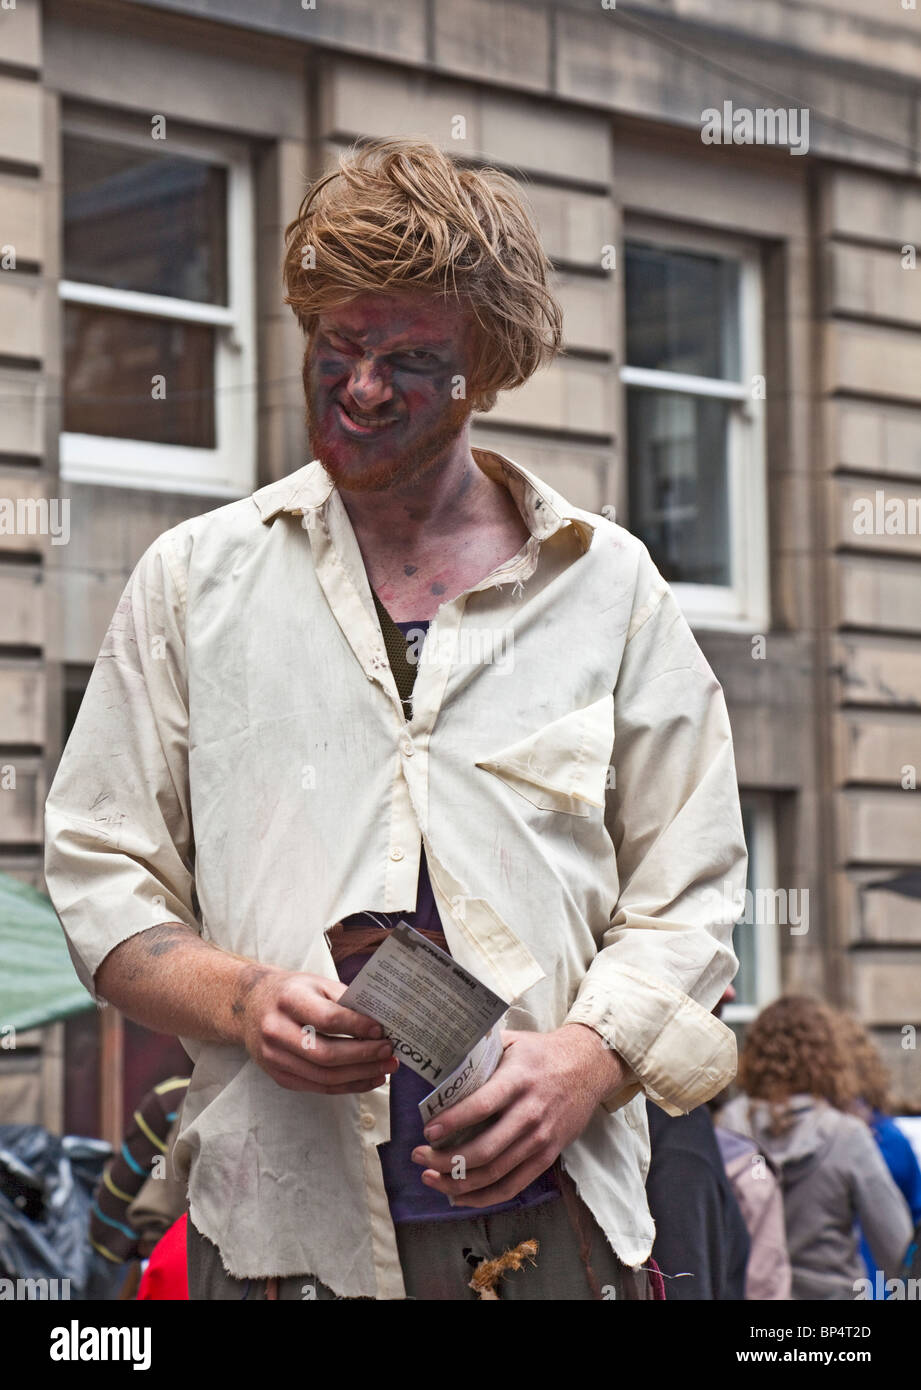 Actor promoting a production of Hood! in the Royal Mile / High Street Edinburgh Festival Fringe. - Stock Image